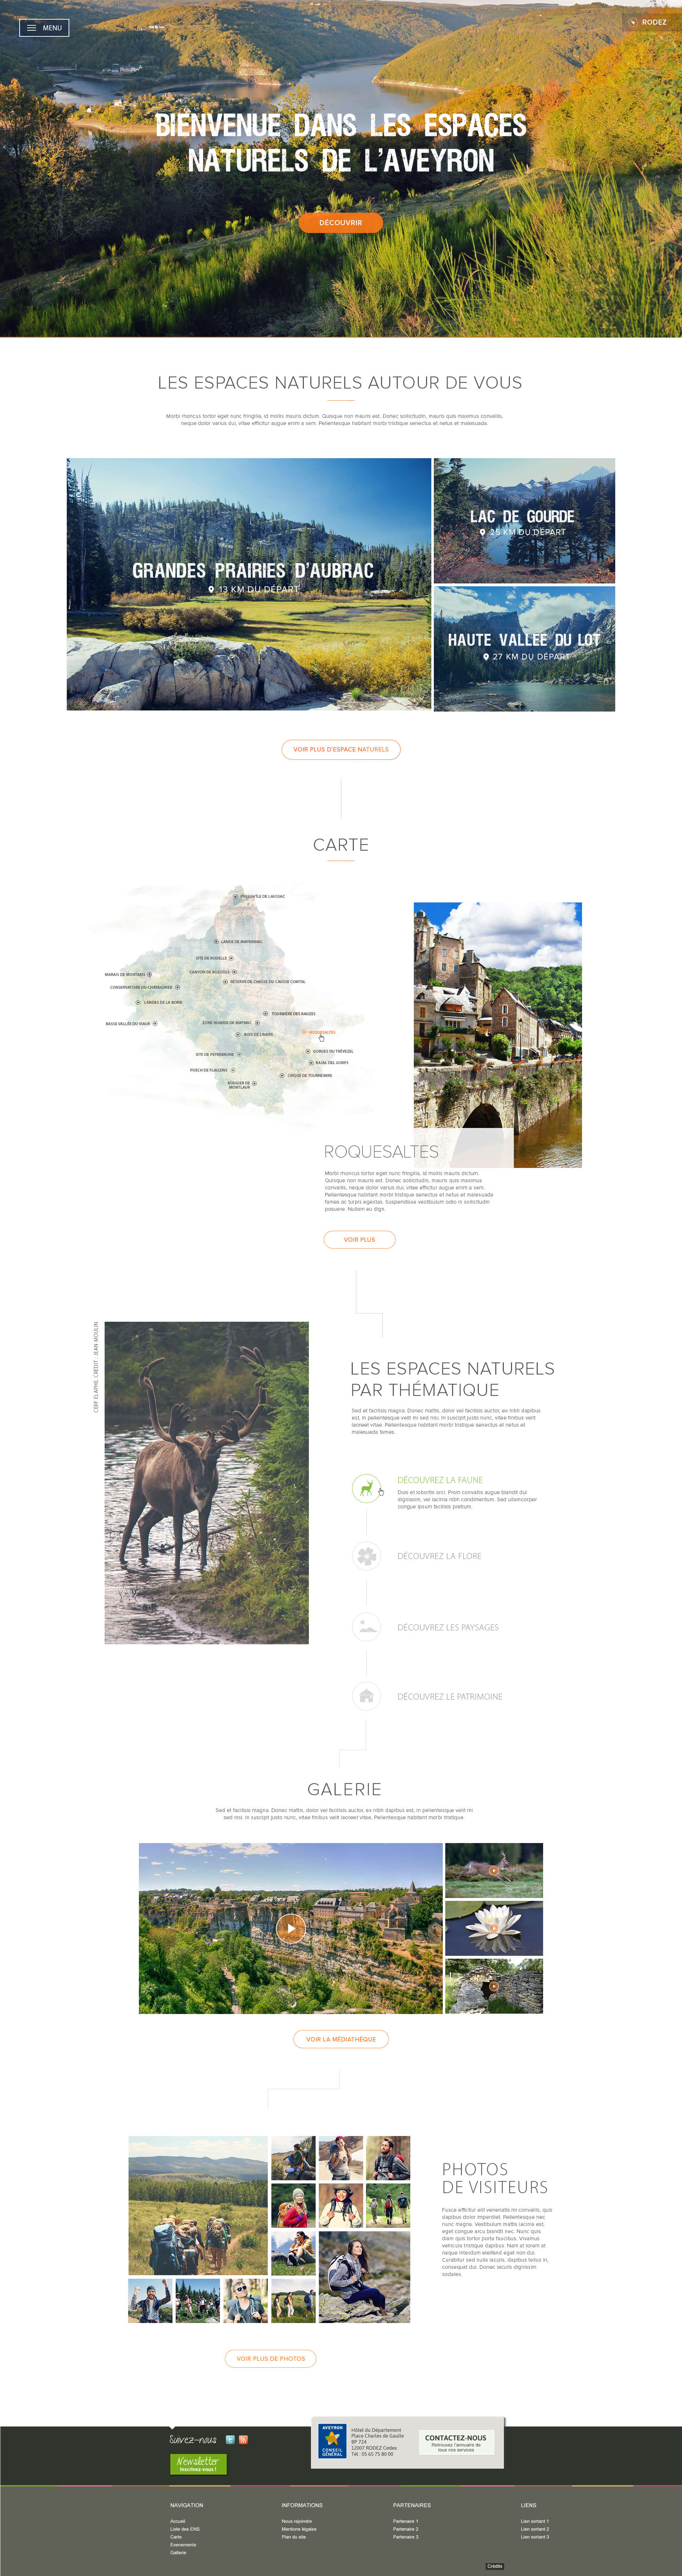 Page d'accueil Espace Nature Aveyron